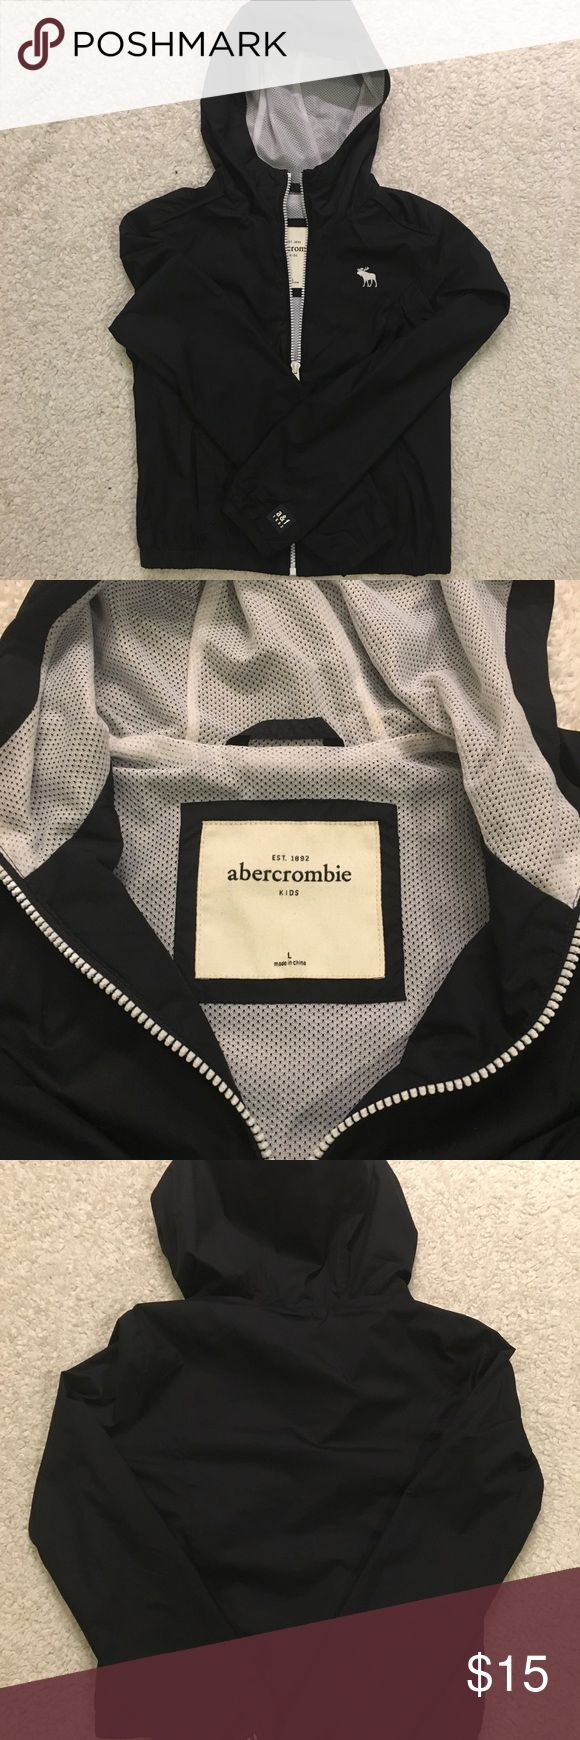 Abercrombie Kids Girls Large Windbreaker Abercrombie Kids Girls windbreaker. I bought it for my daughter and she may have worn it once. Great condition! abercrombie kids Jackets & Coats